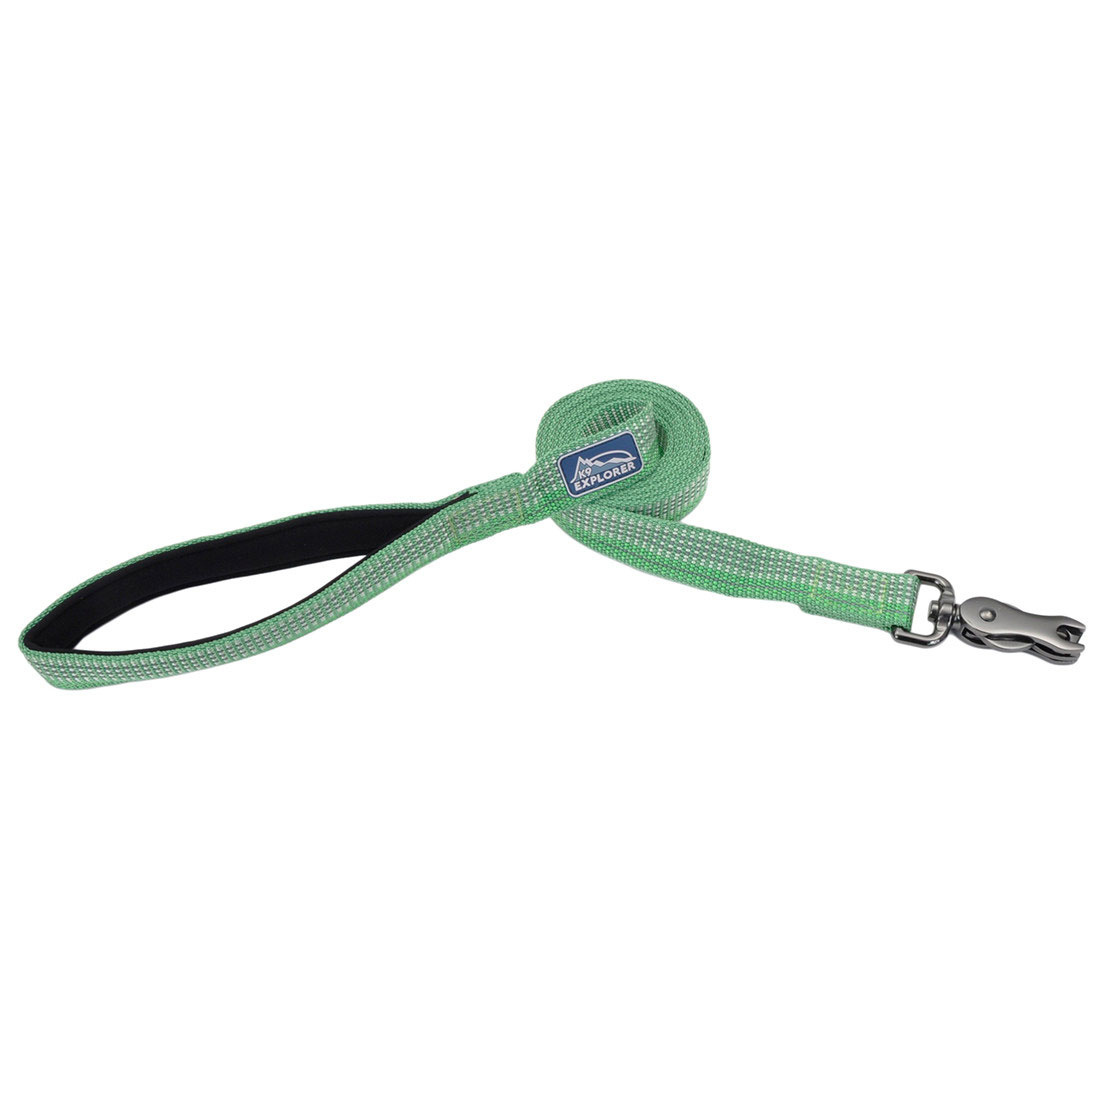 "Coastal Pet Coastal K9 Reflective Lead 6' Meadow Green 5/8"" Product Image"